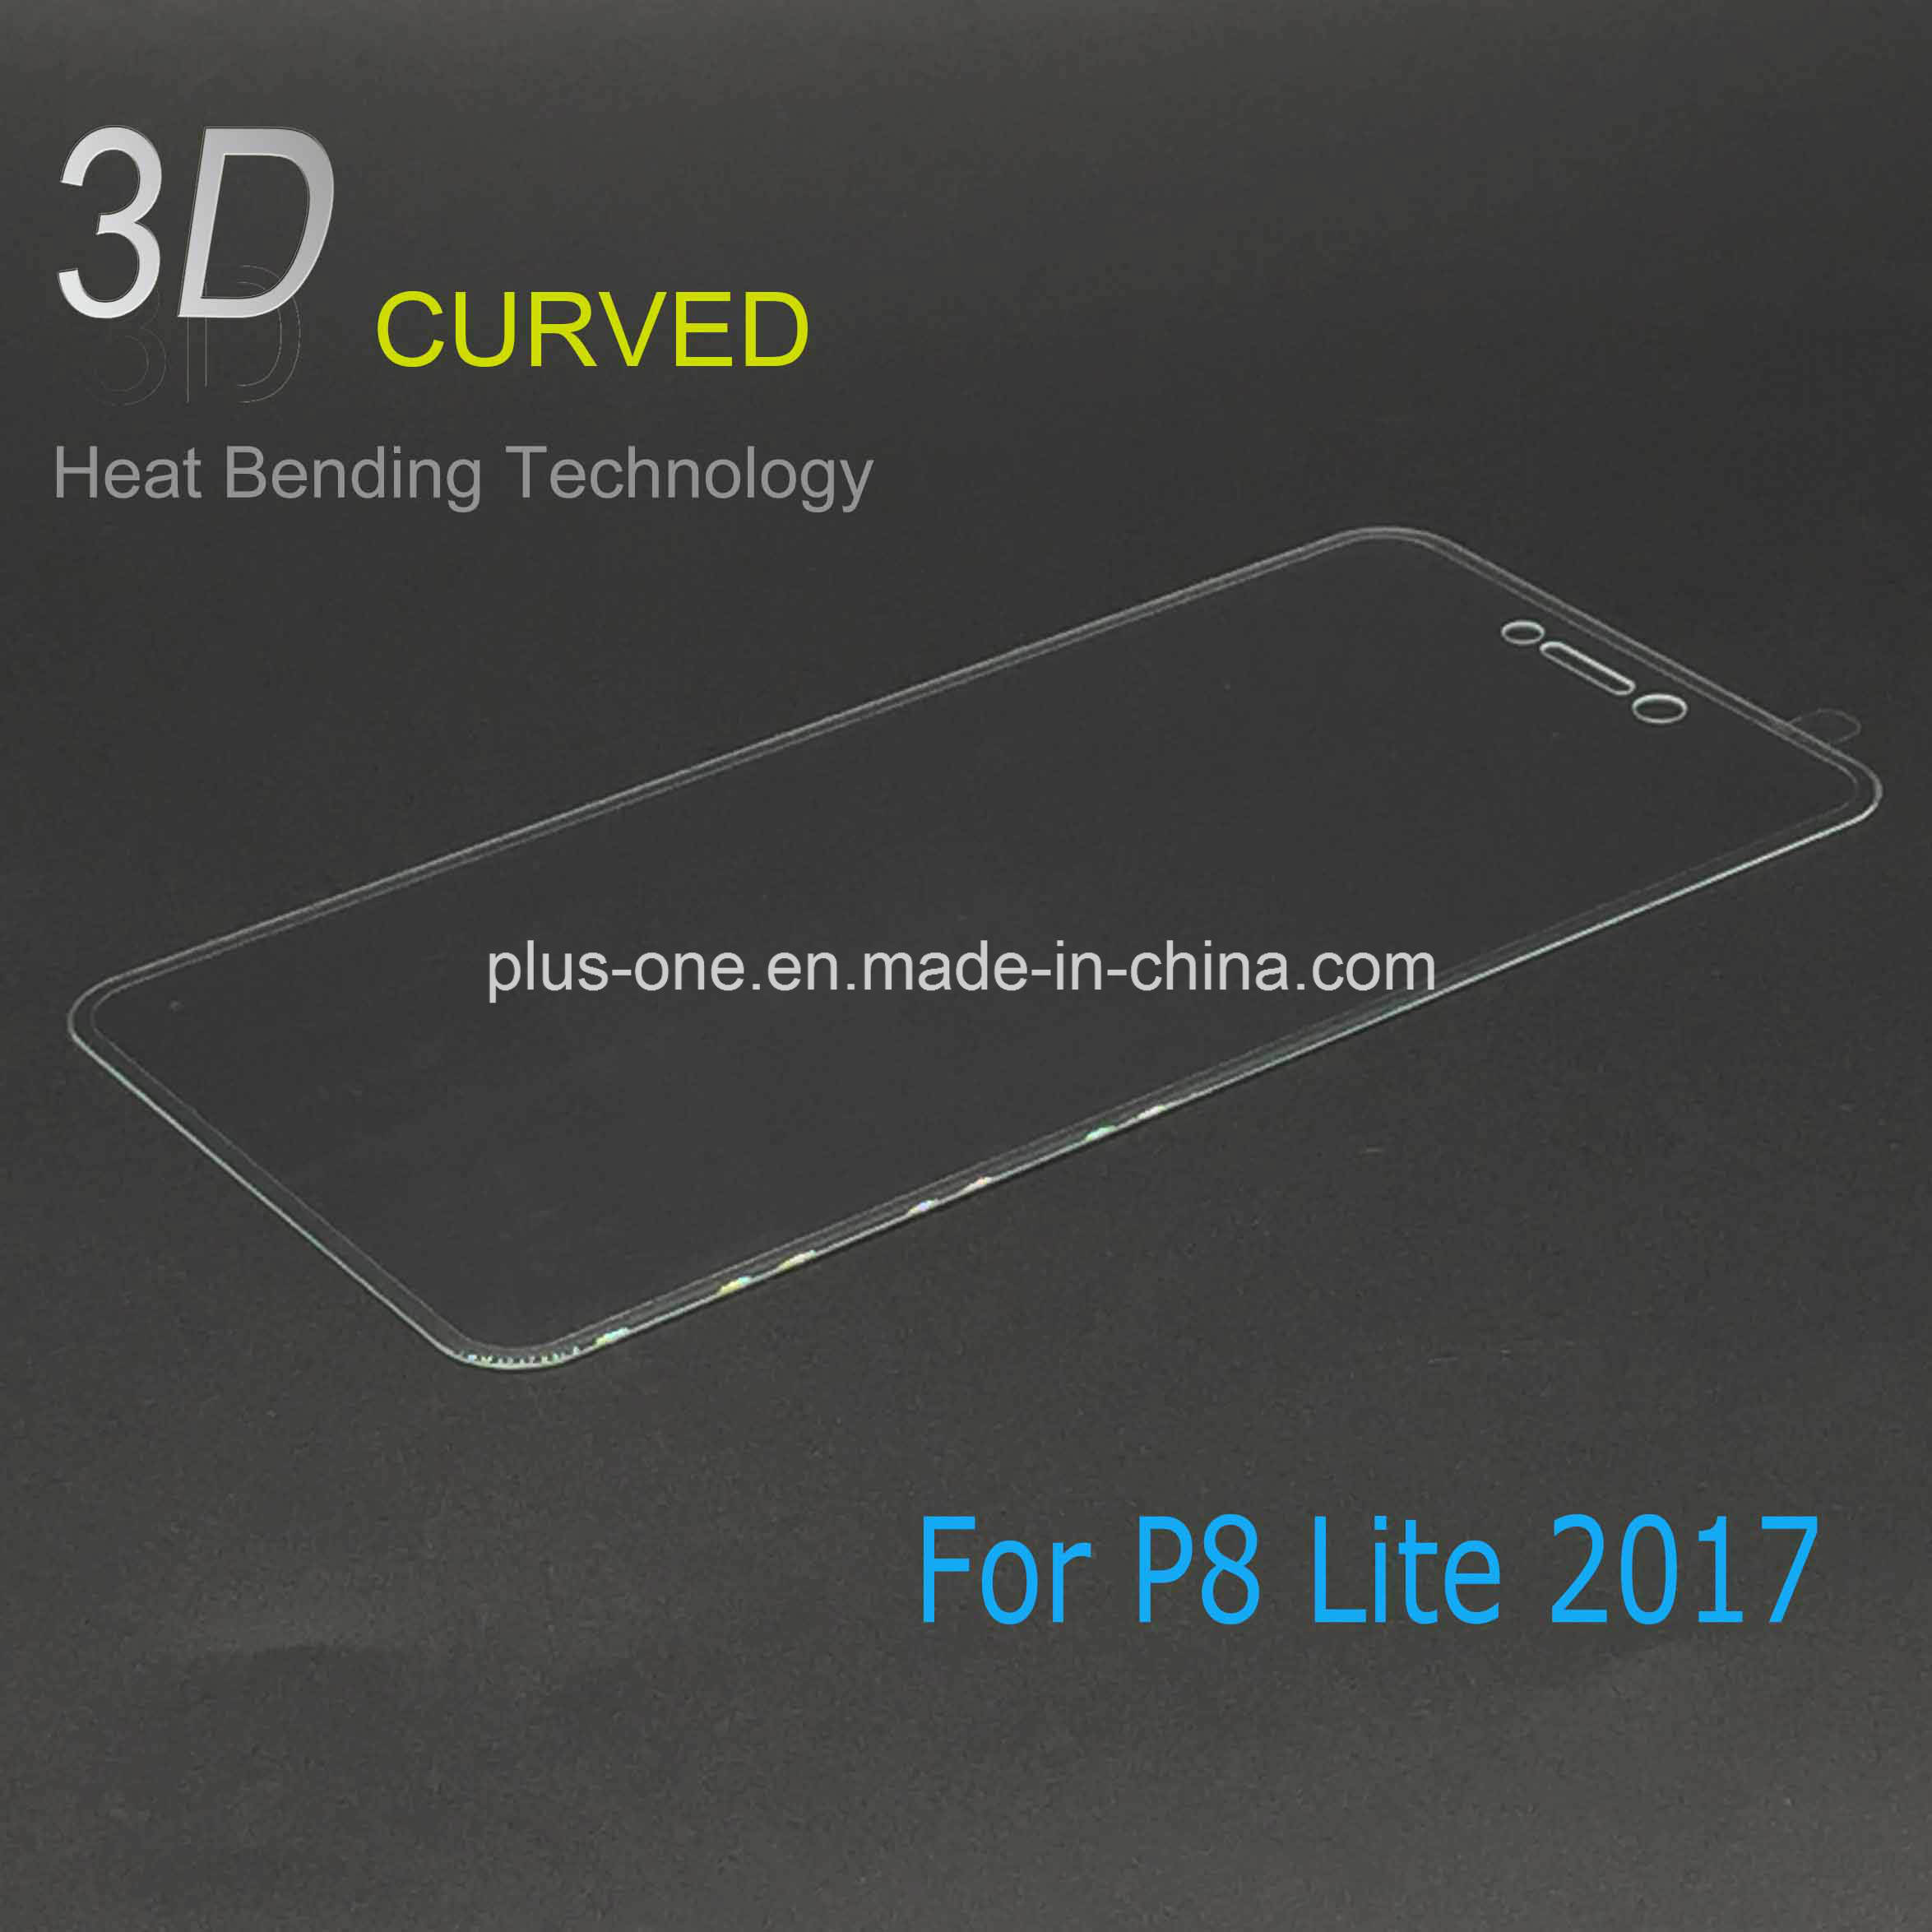 3D Curved Tempered Glass Screen Protector for Huawei P8 Lite 2017